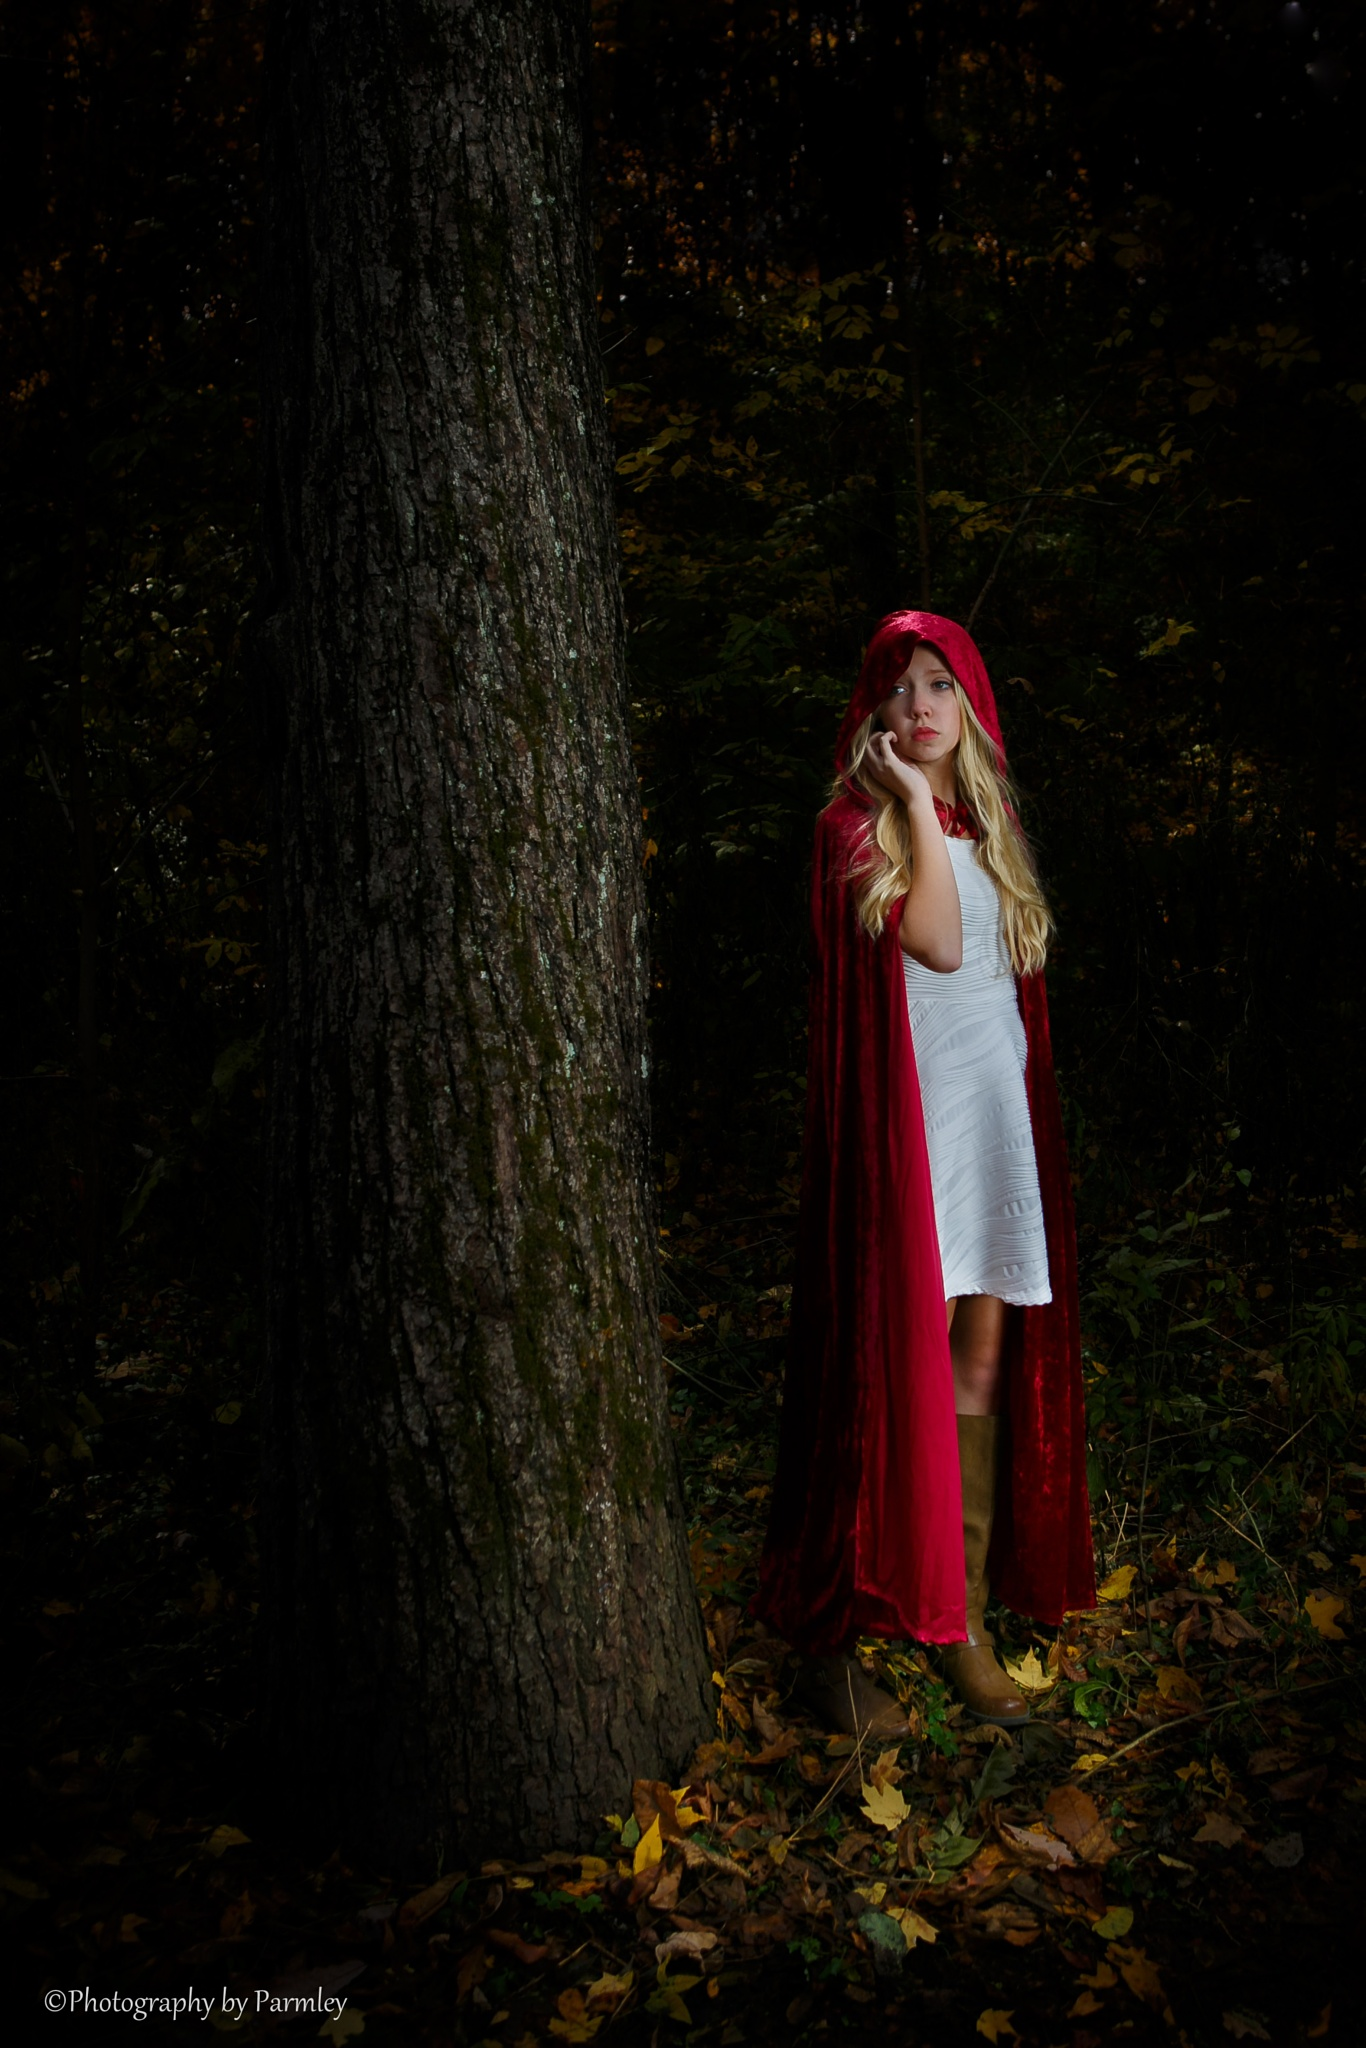 Red Riding Hood by JP Parmley